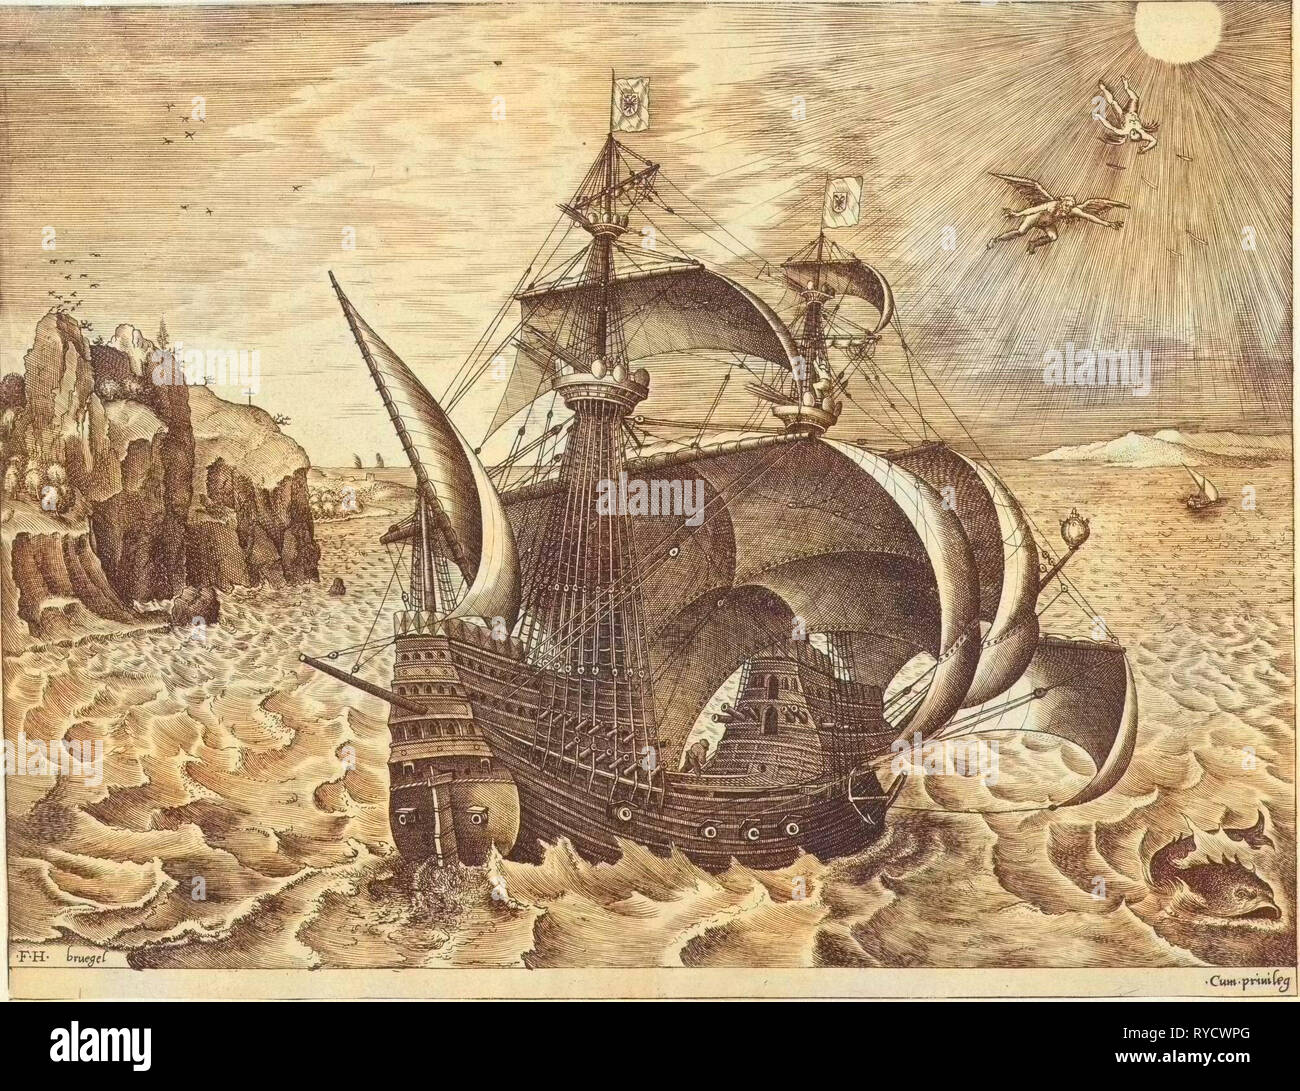 Sailing ship with the Fall of Icarus, Frans Huys, unknown, 1561-1565 - Stock Image